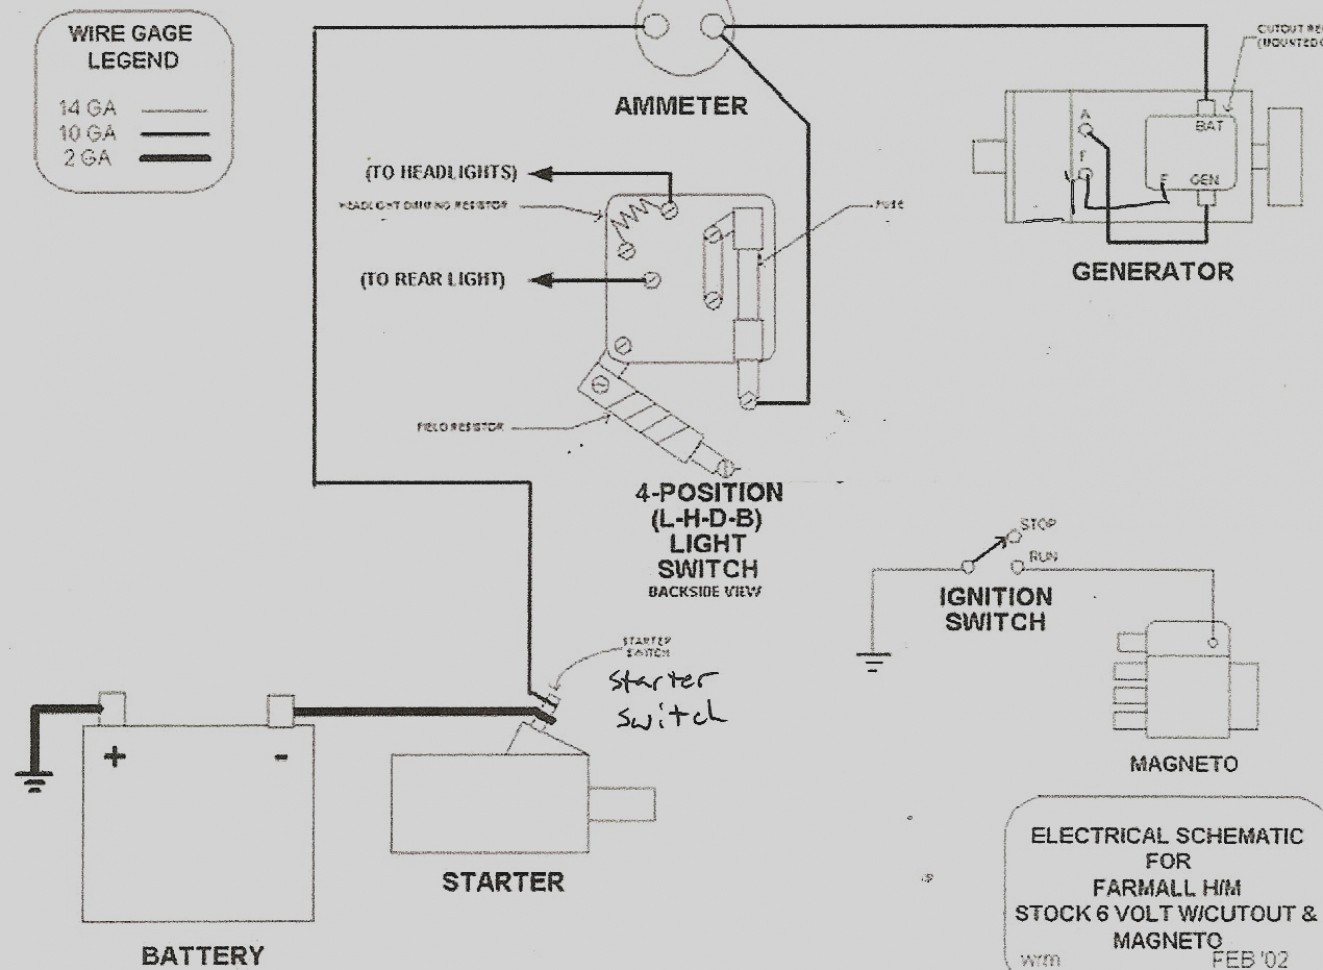 Farmall H Wiring Schematic - Wiring Diagrams Hubs - Farmall H Wiring Diagram